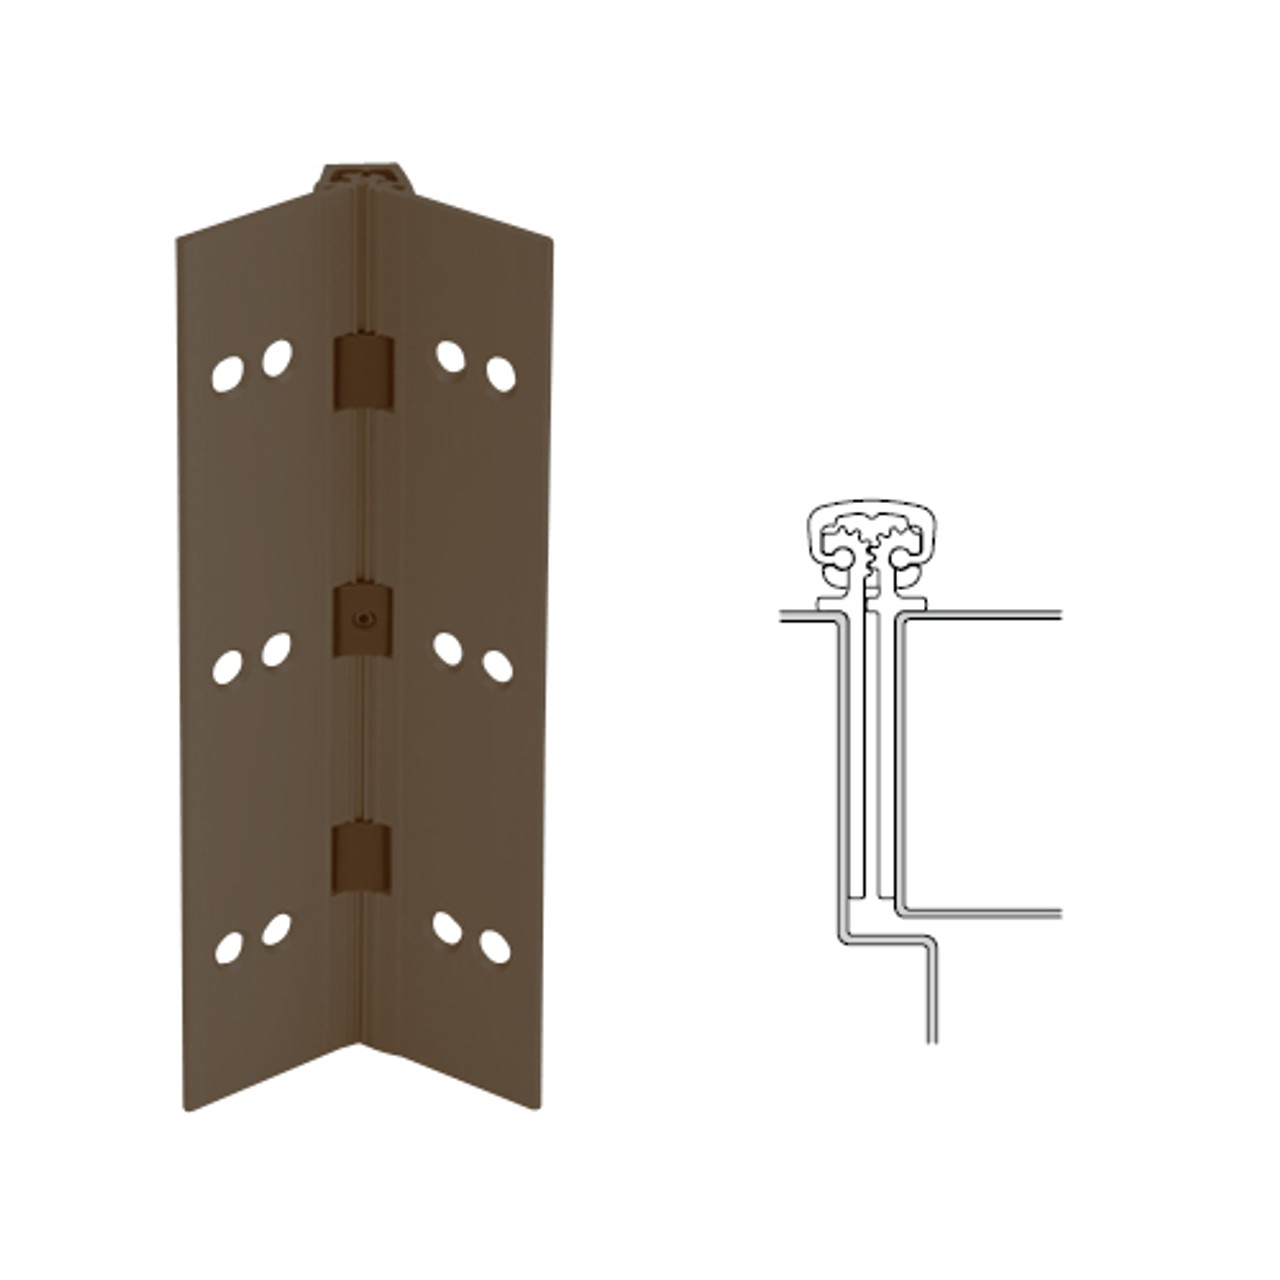 027XY-313AN-83-TF IVES Full Mortise Continuous Geared Hinges with Thread Forming Screws in Dark Bronze Anodized